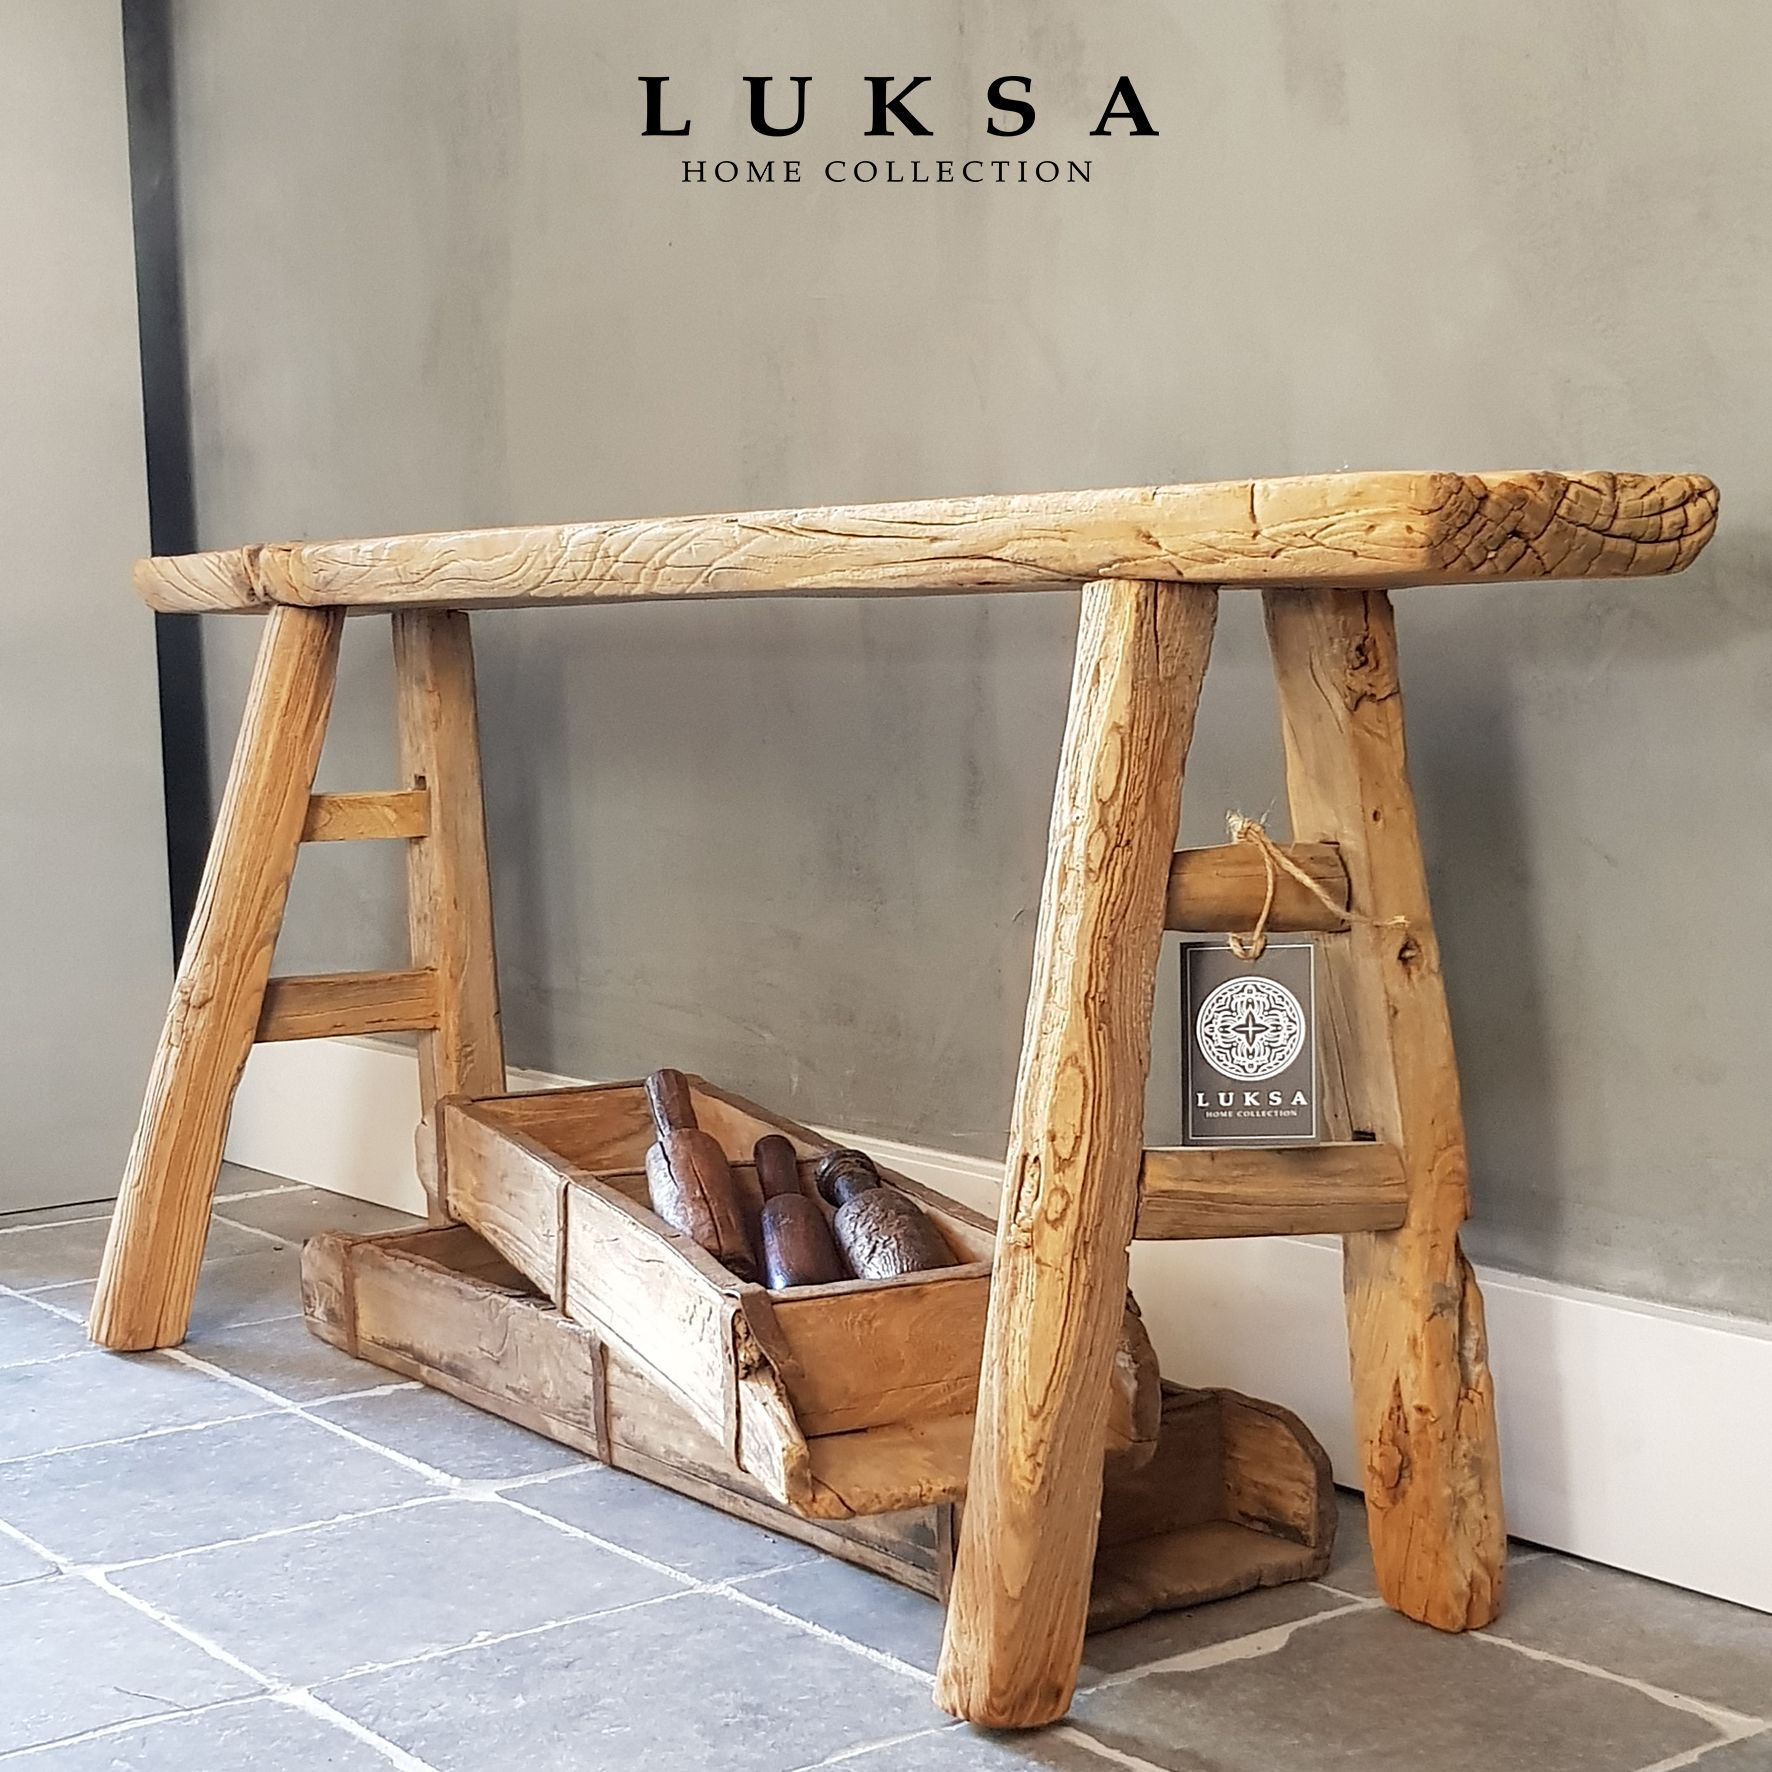 Pin Op Luksa Home Collection